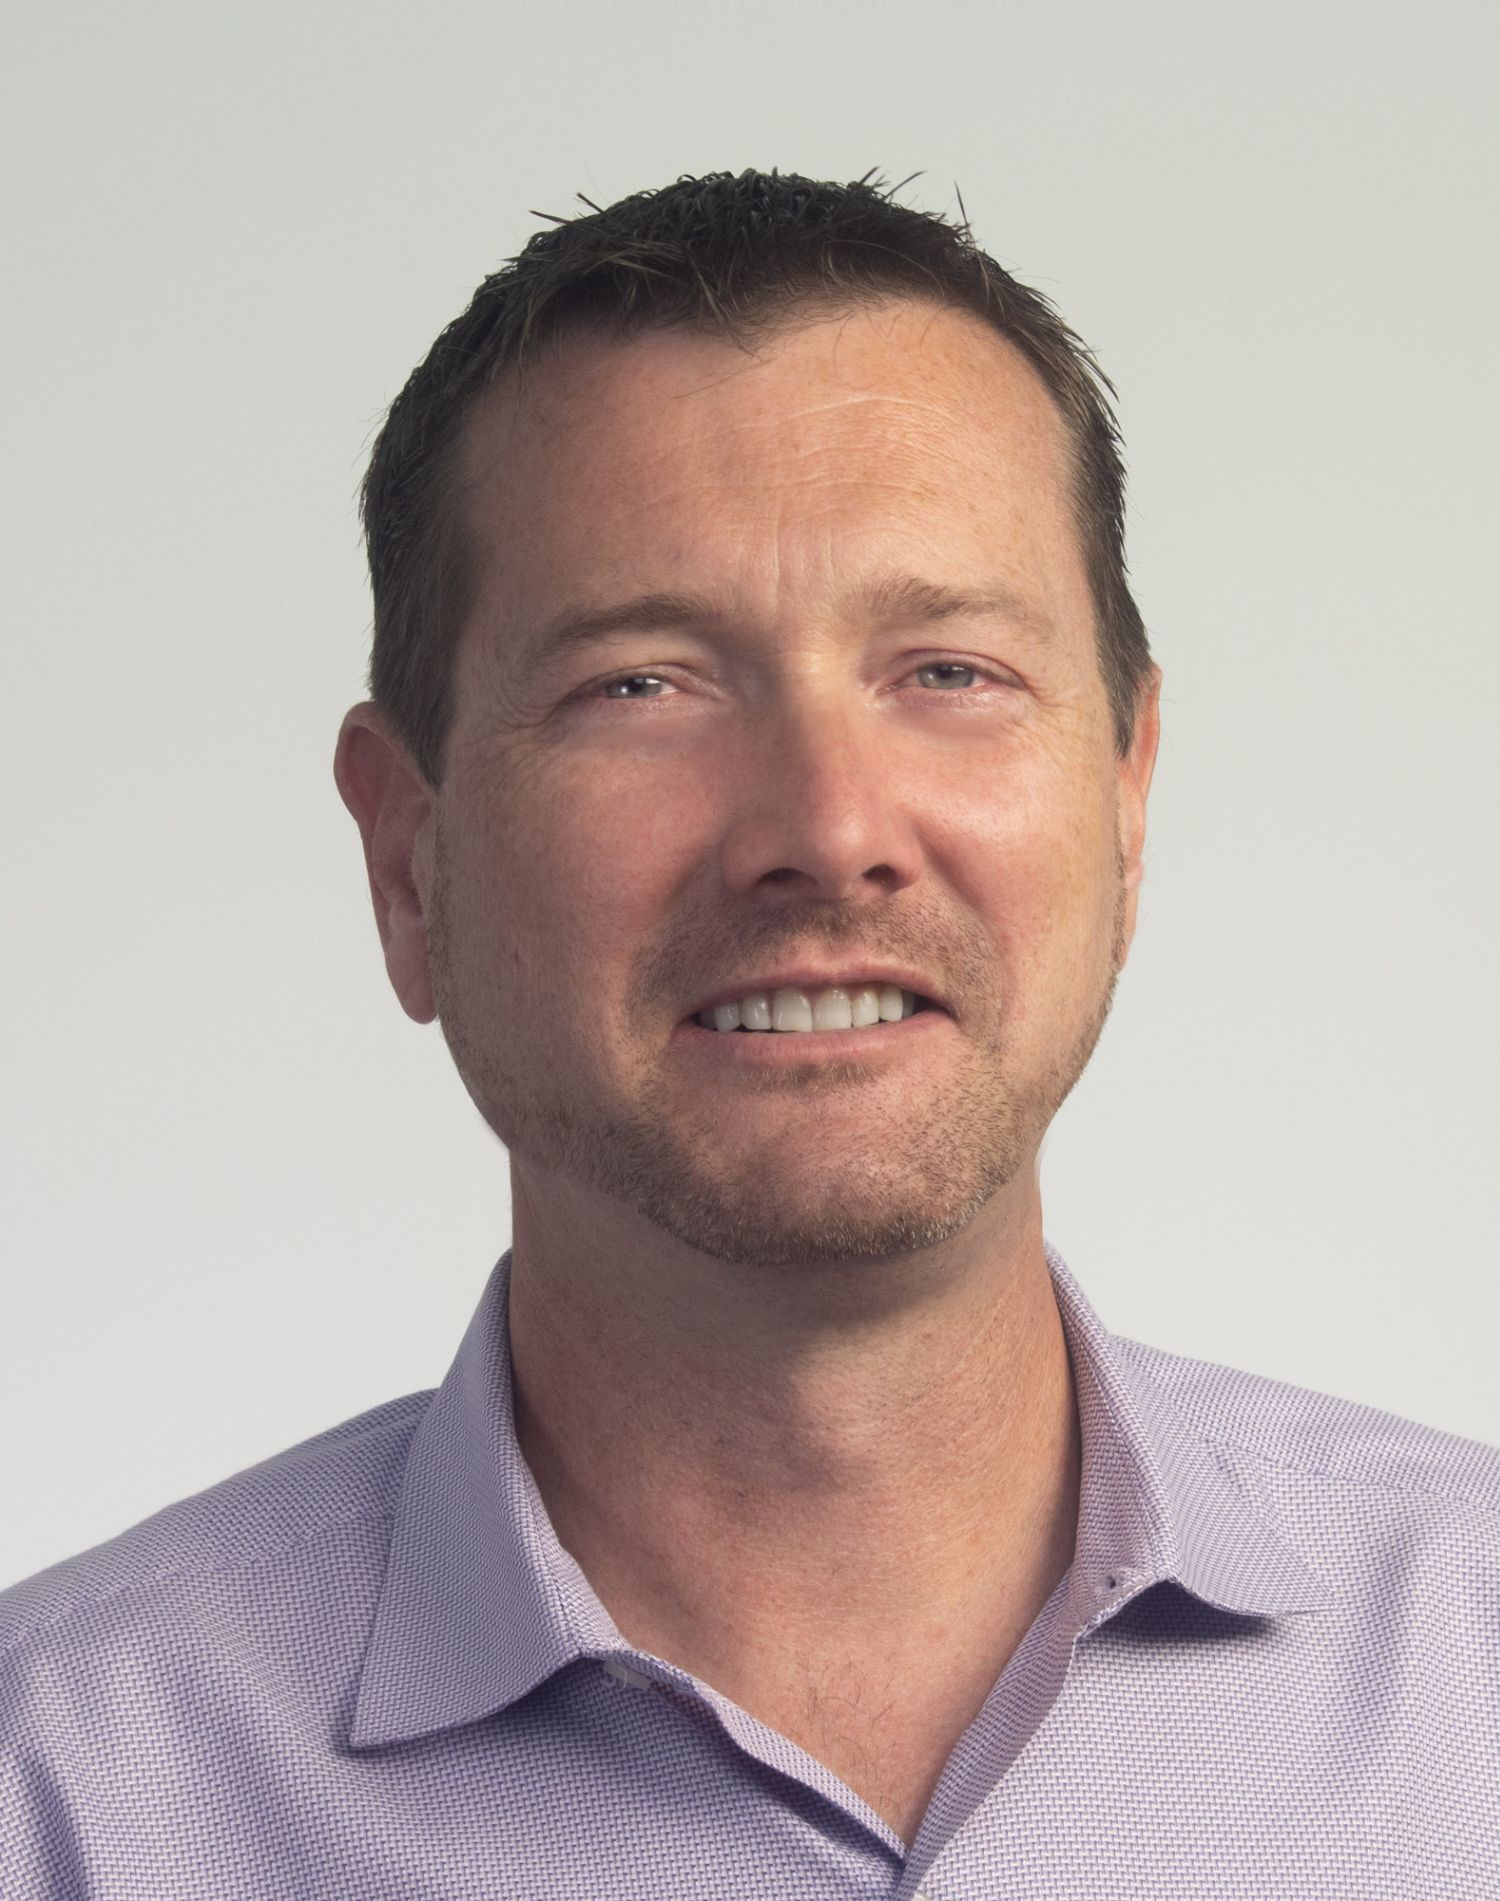 John Fieldly is the CEO of Celsius Holdings traded with ticker CELH